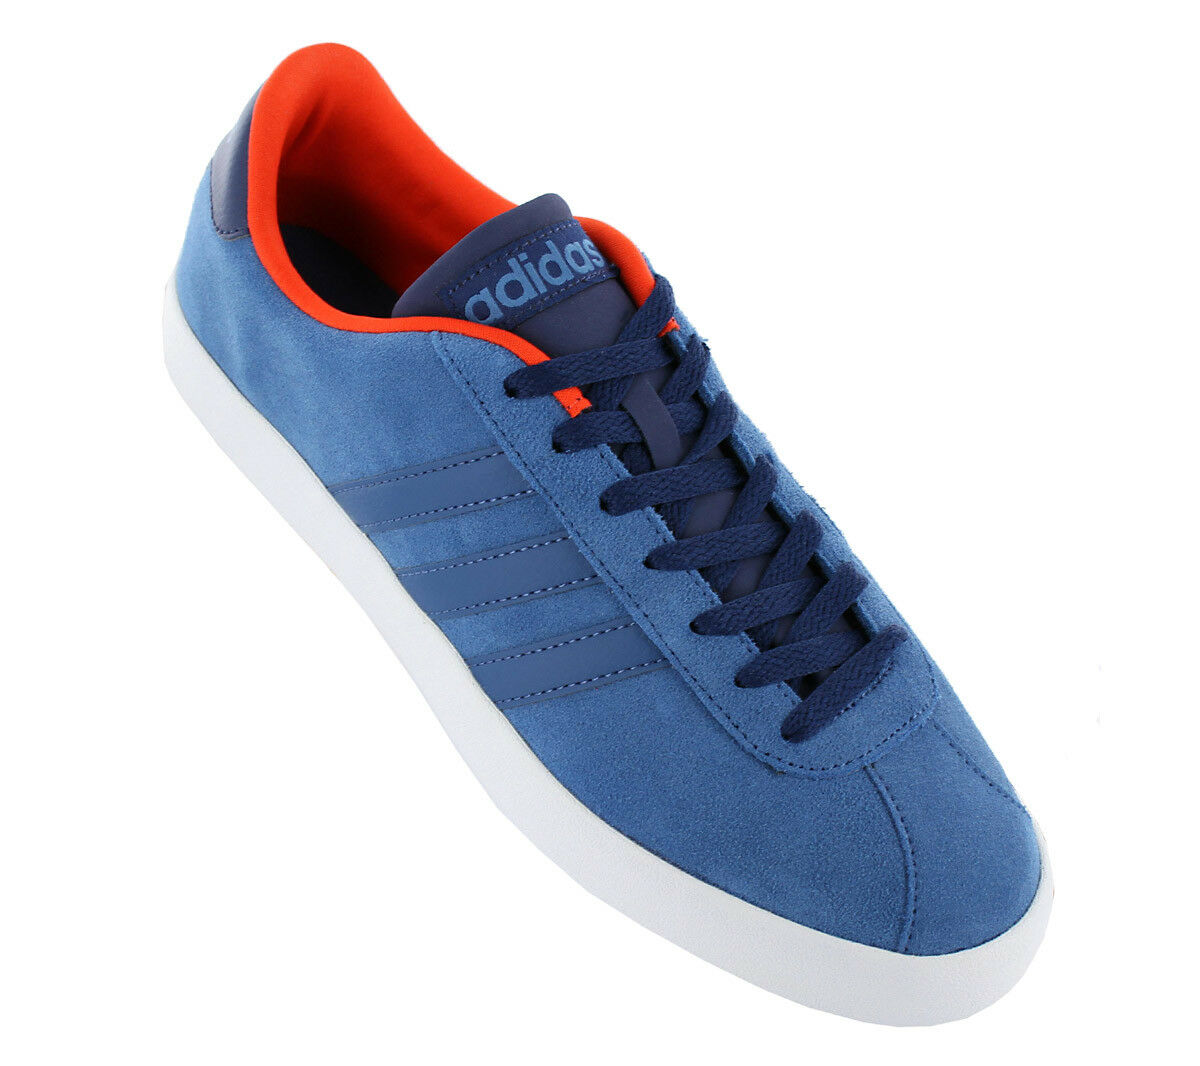 NEW adidas Vlcourt Vulc AW3963 Men''s shoes Trainers Sneakers SALE